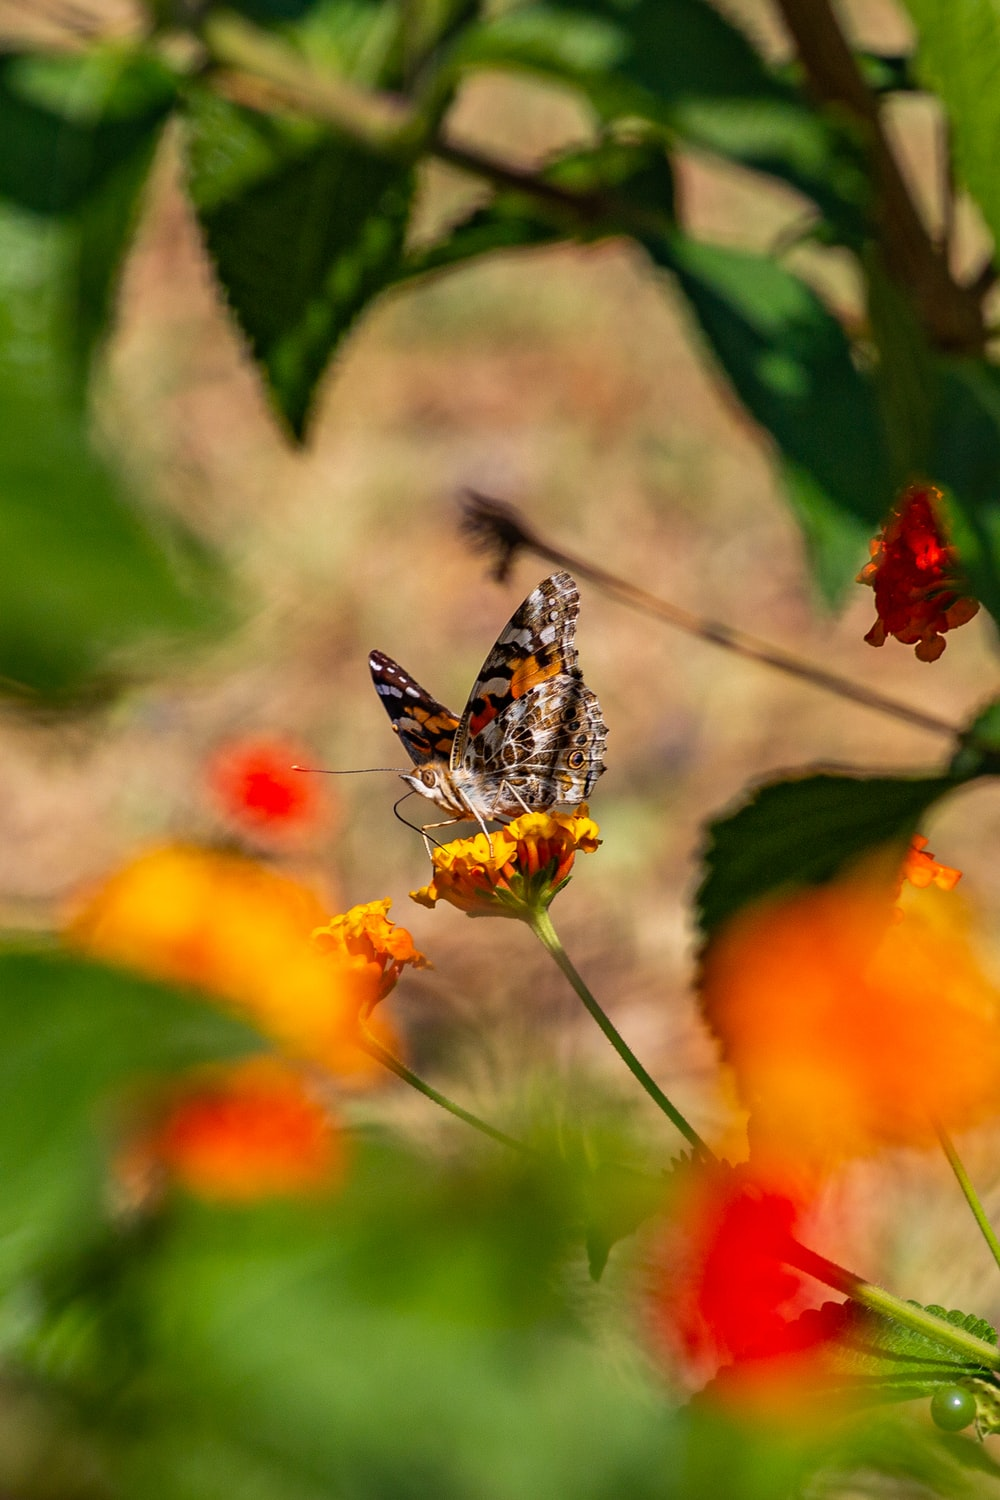 brown and black butterfly on orange flower